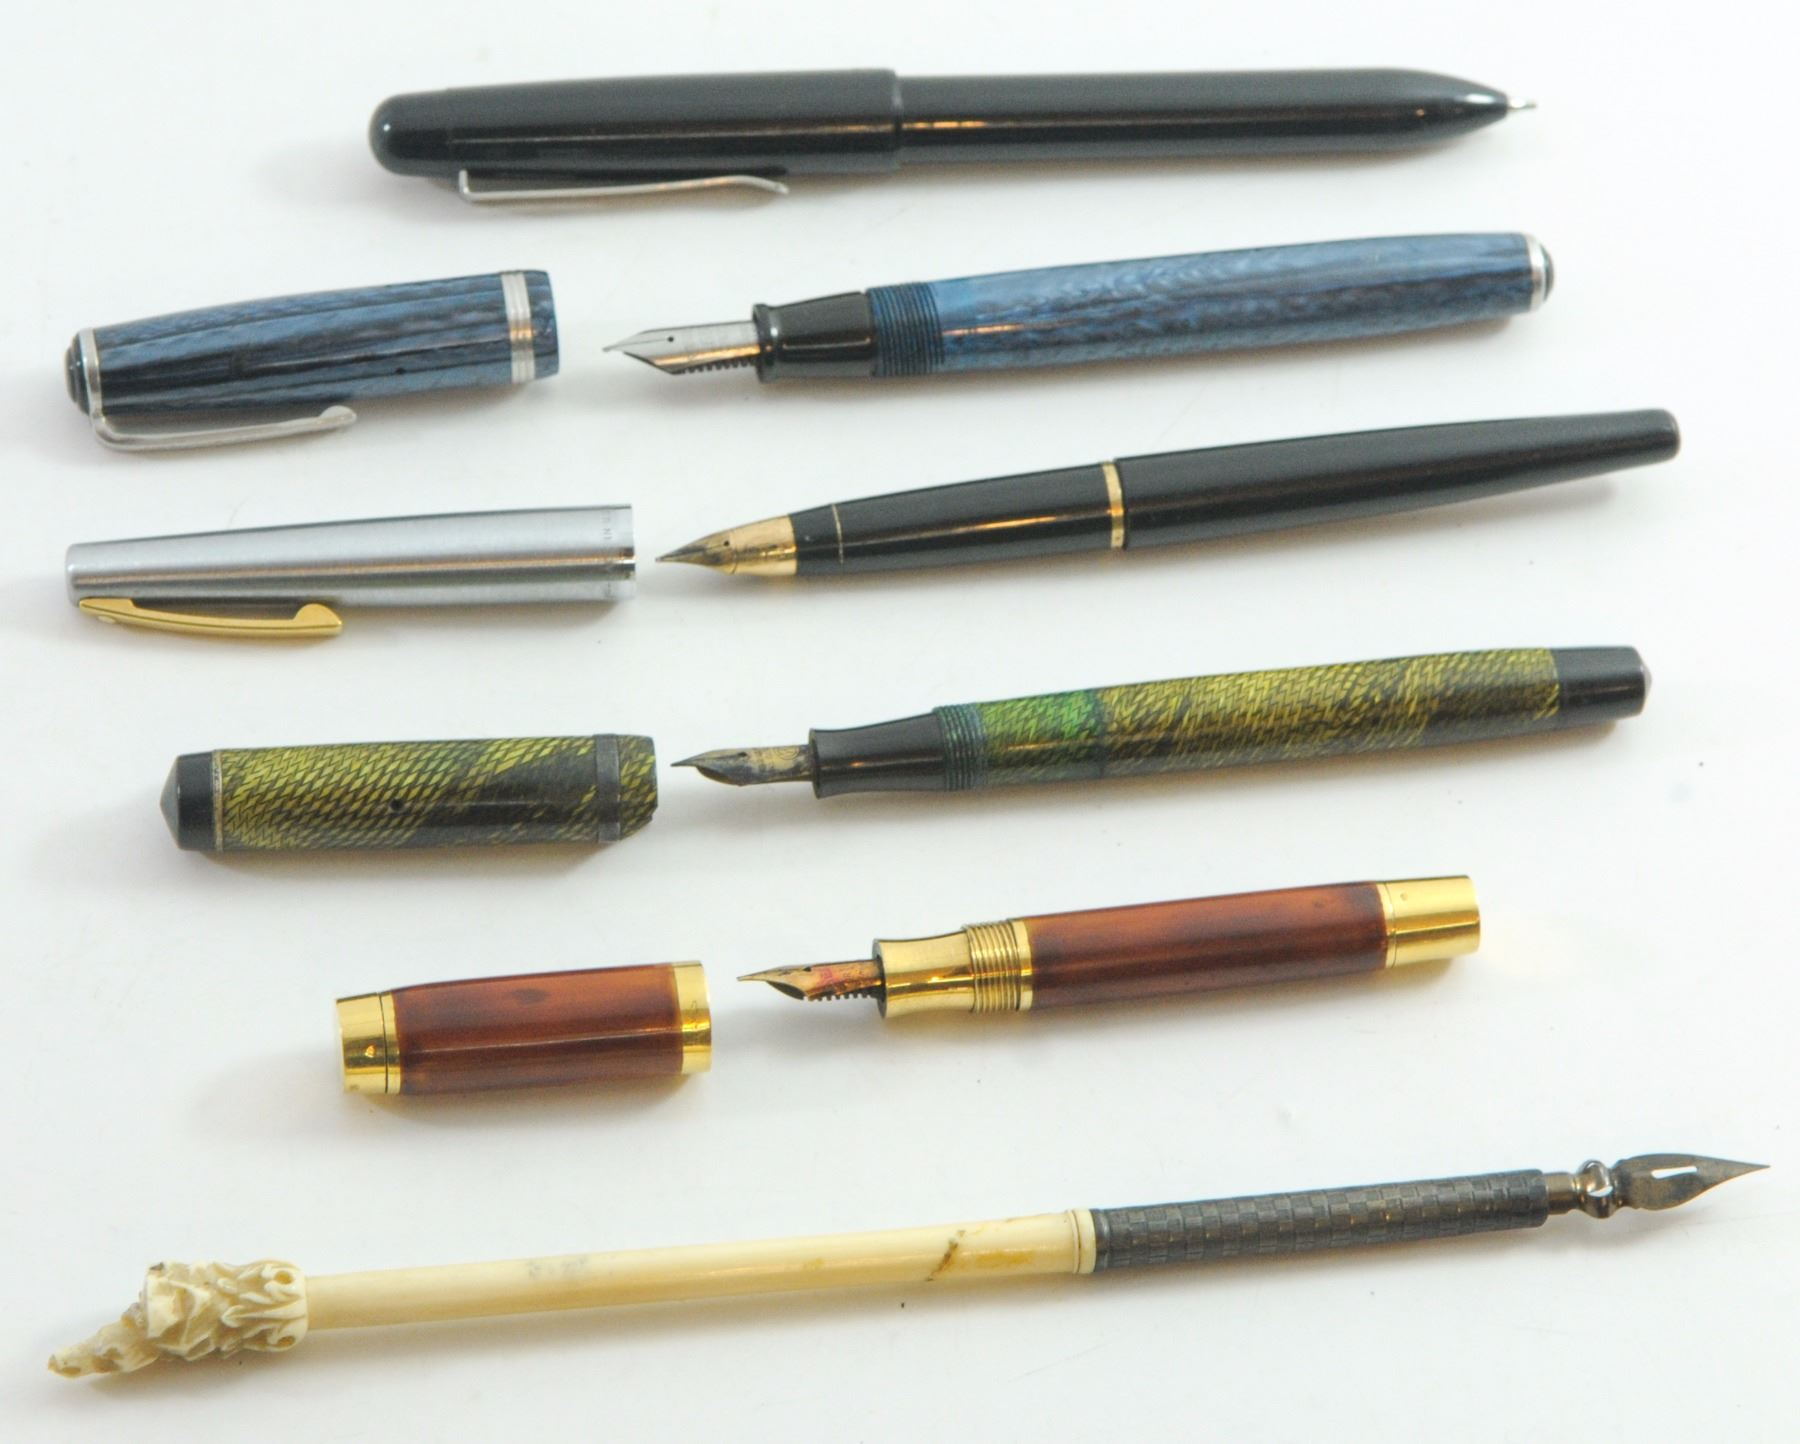 Lot of 6 old pens image 2 lot of 6 old pens thecheapjerseys Choice Image